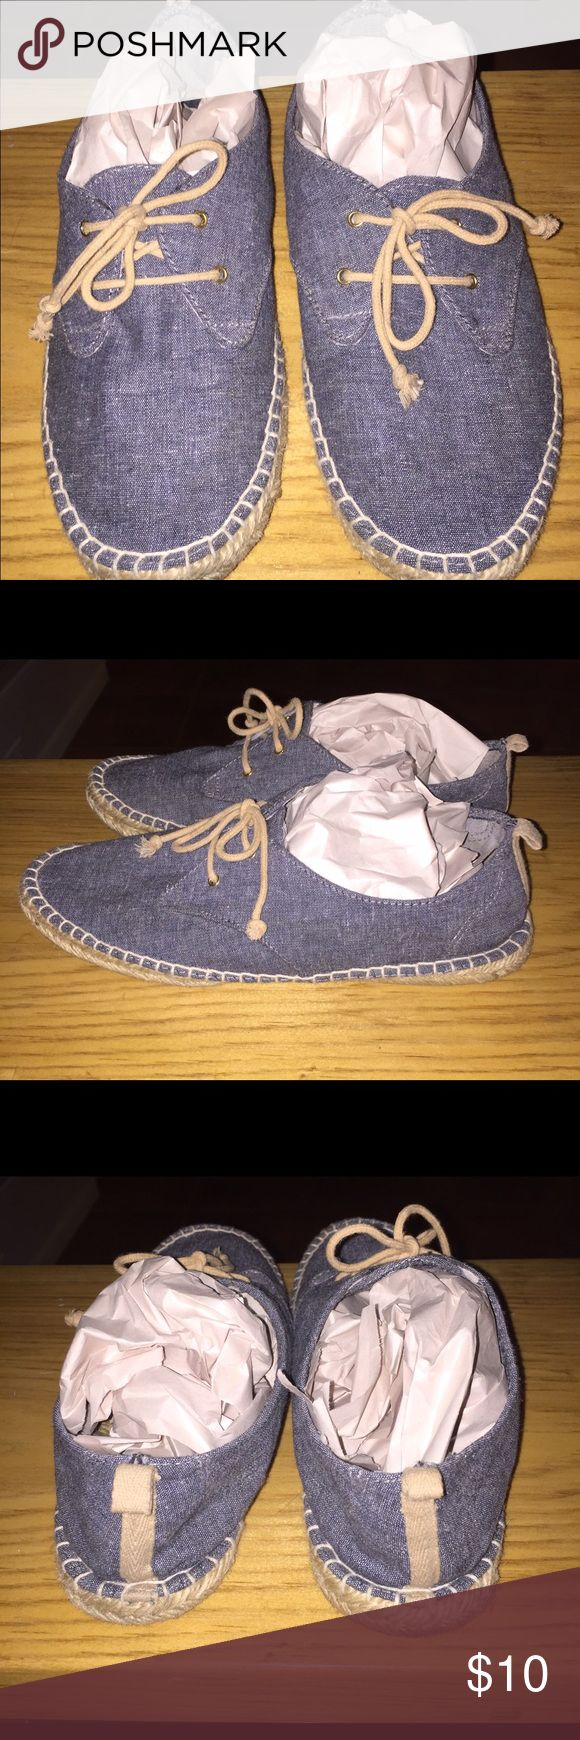 GAP espadrille shoes (Gently Used) lightweight espadrille shoes - perfect for summer time/ walks on the beach. GAP Shoes Espadrilles